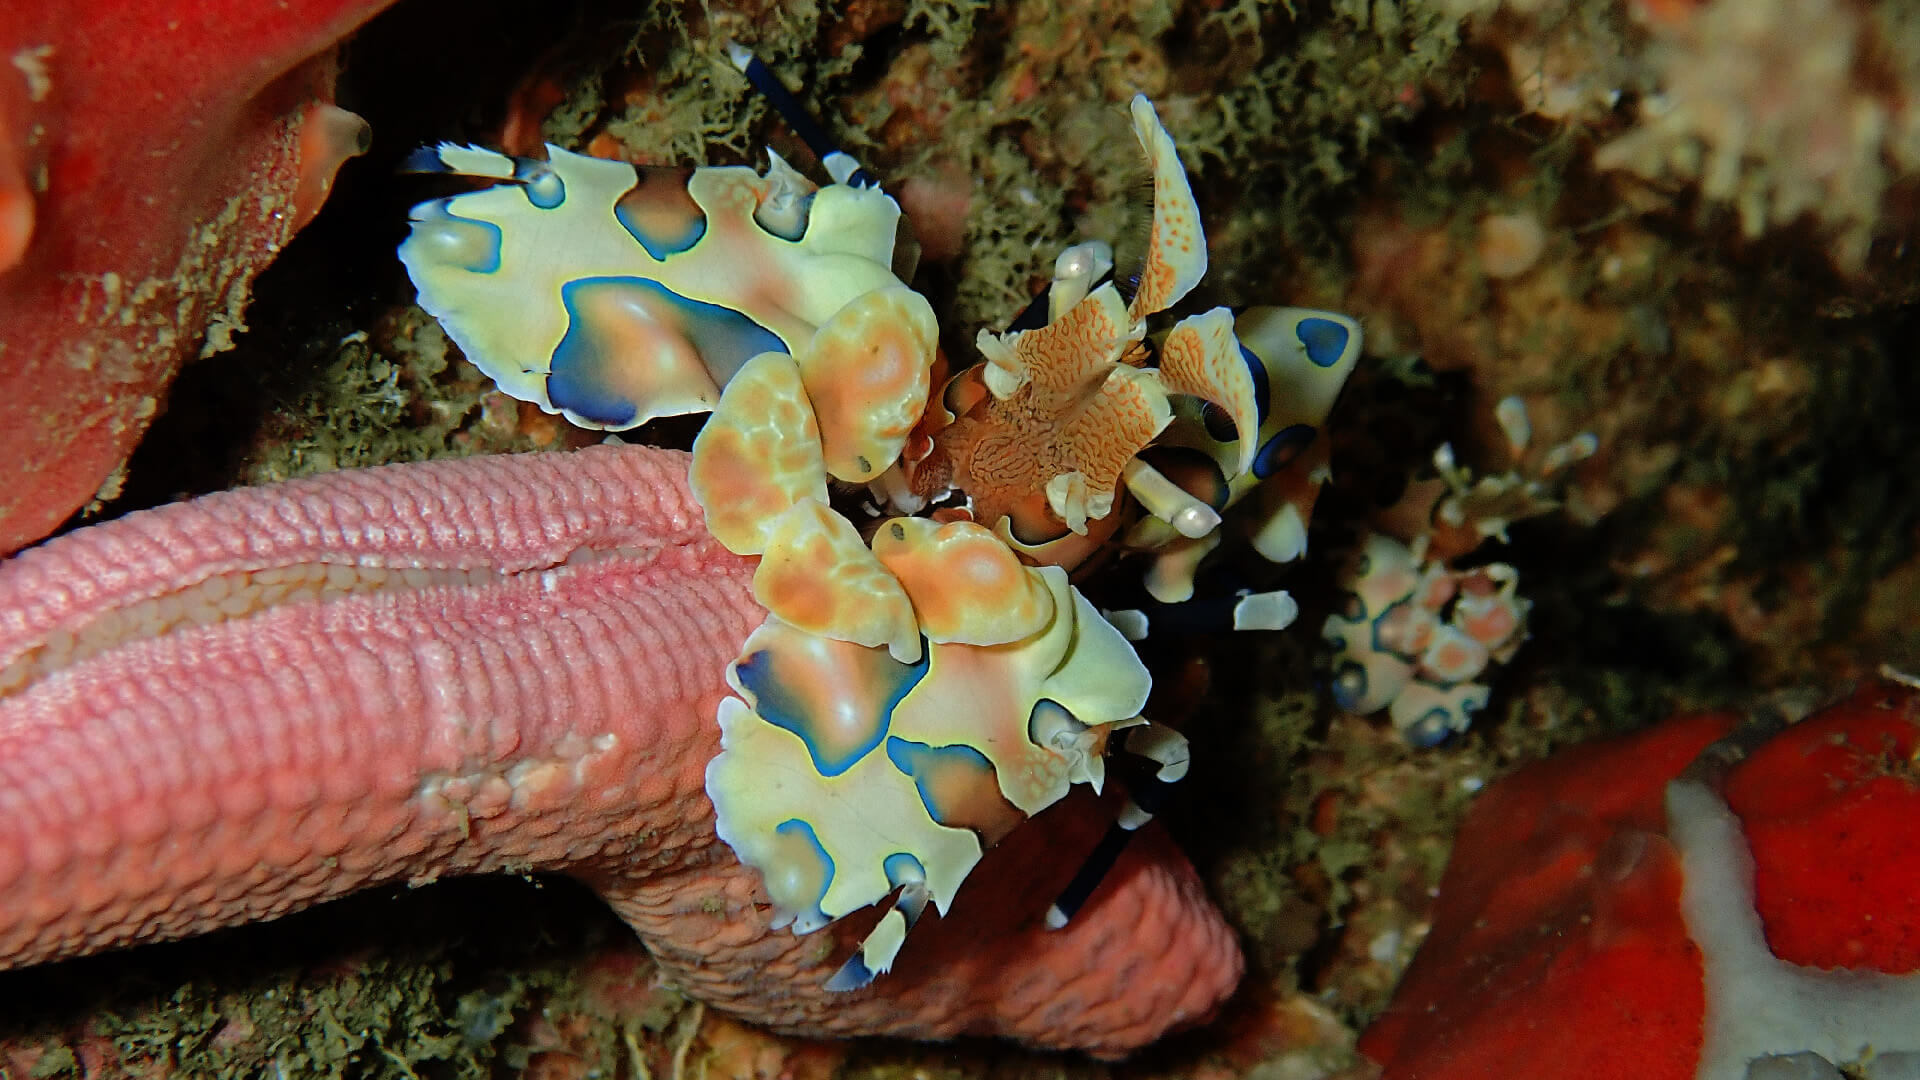 harlequin shrimp feeding on the severed leg of a large starfish